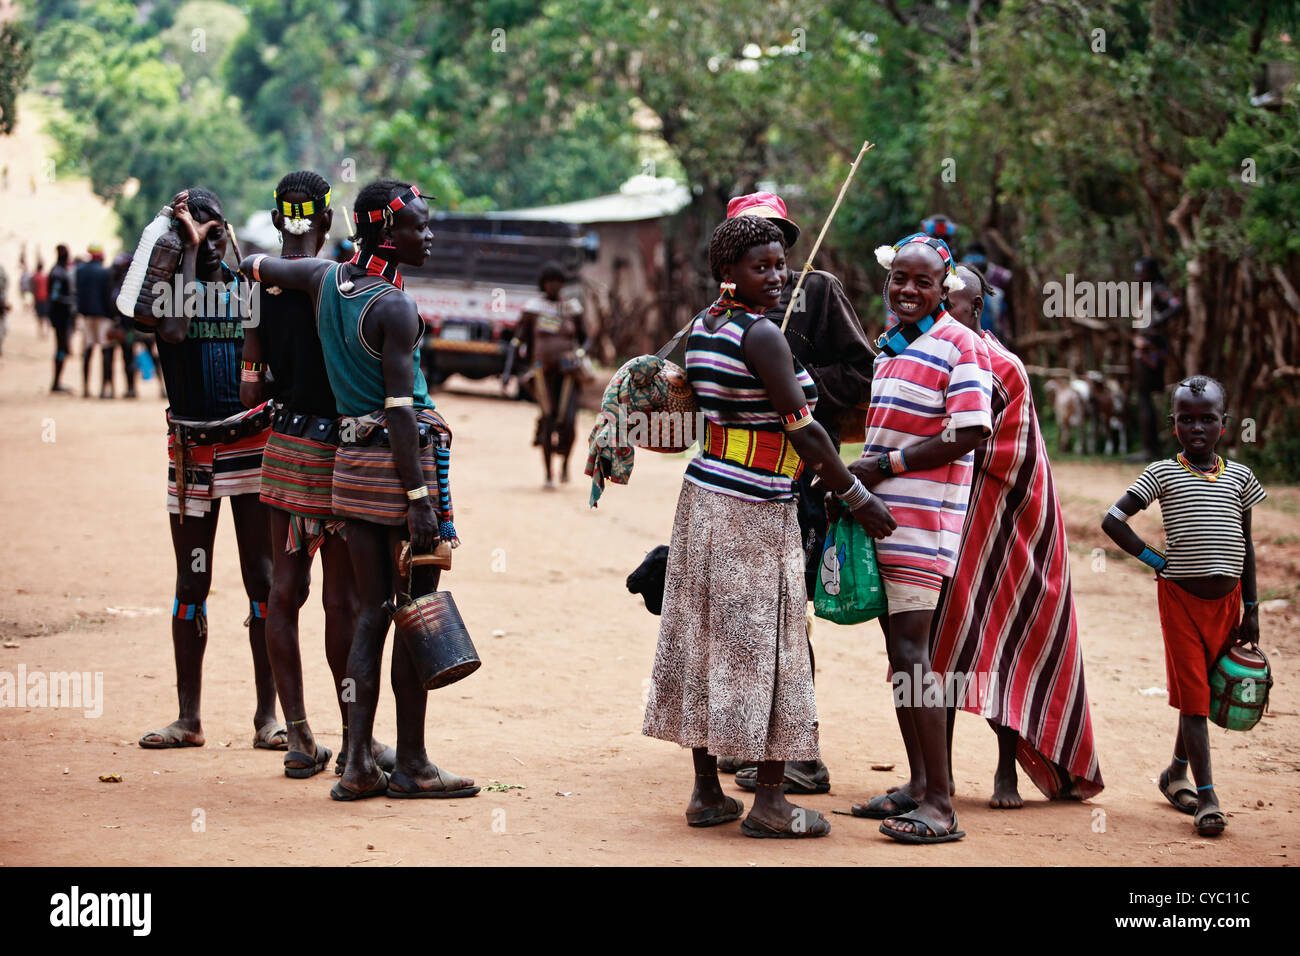 Group of Tribal Banna on their way to a local market. - Stock Image